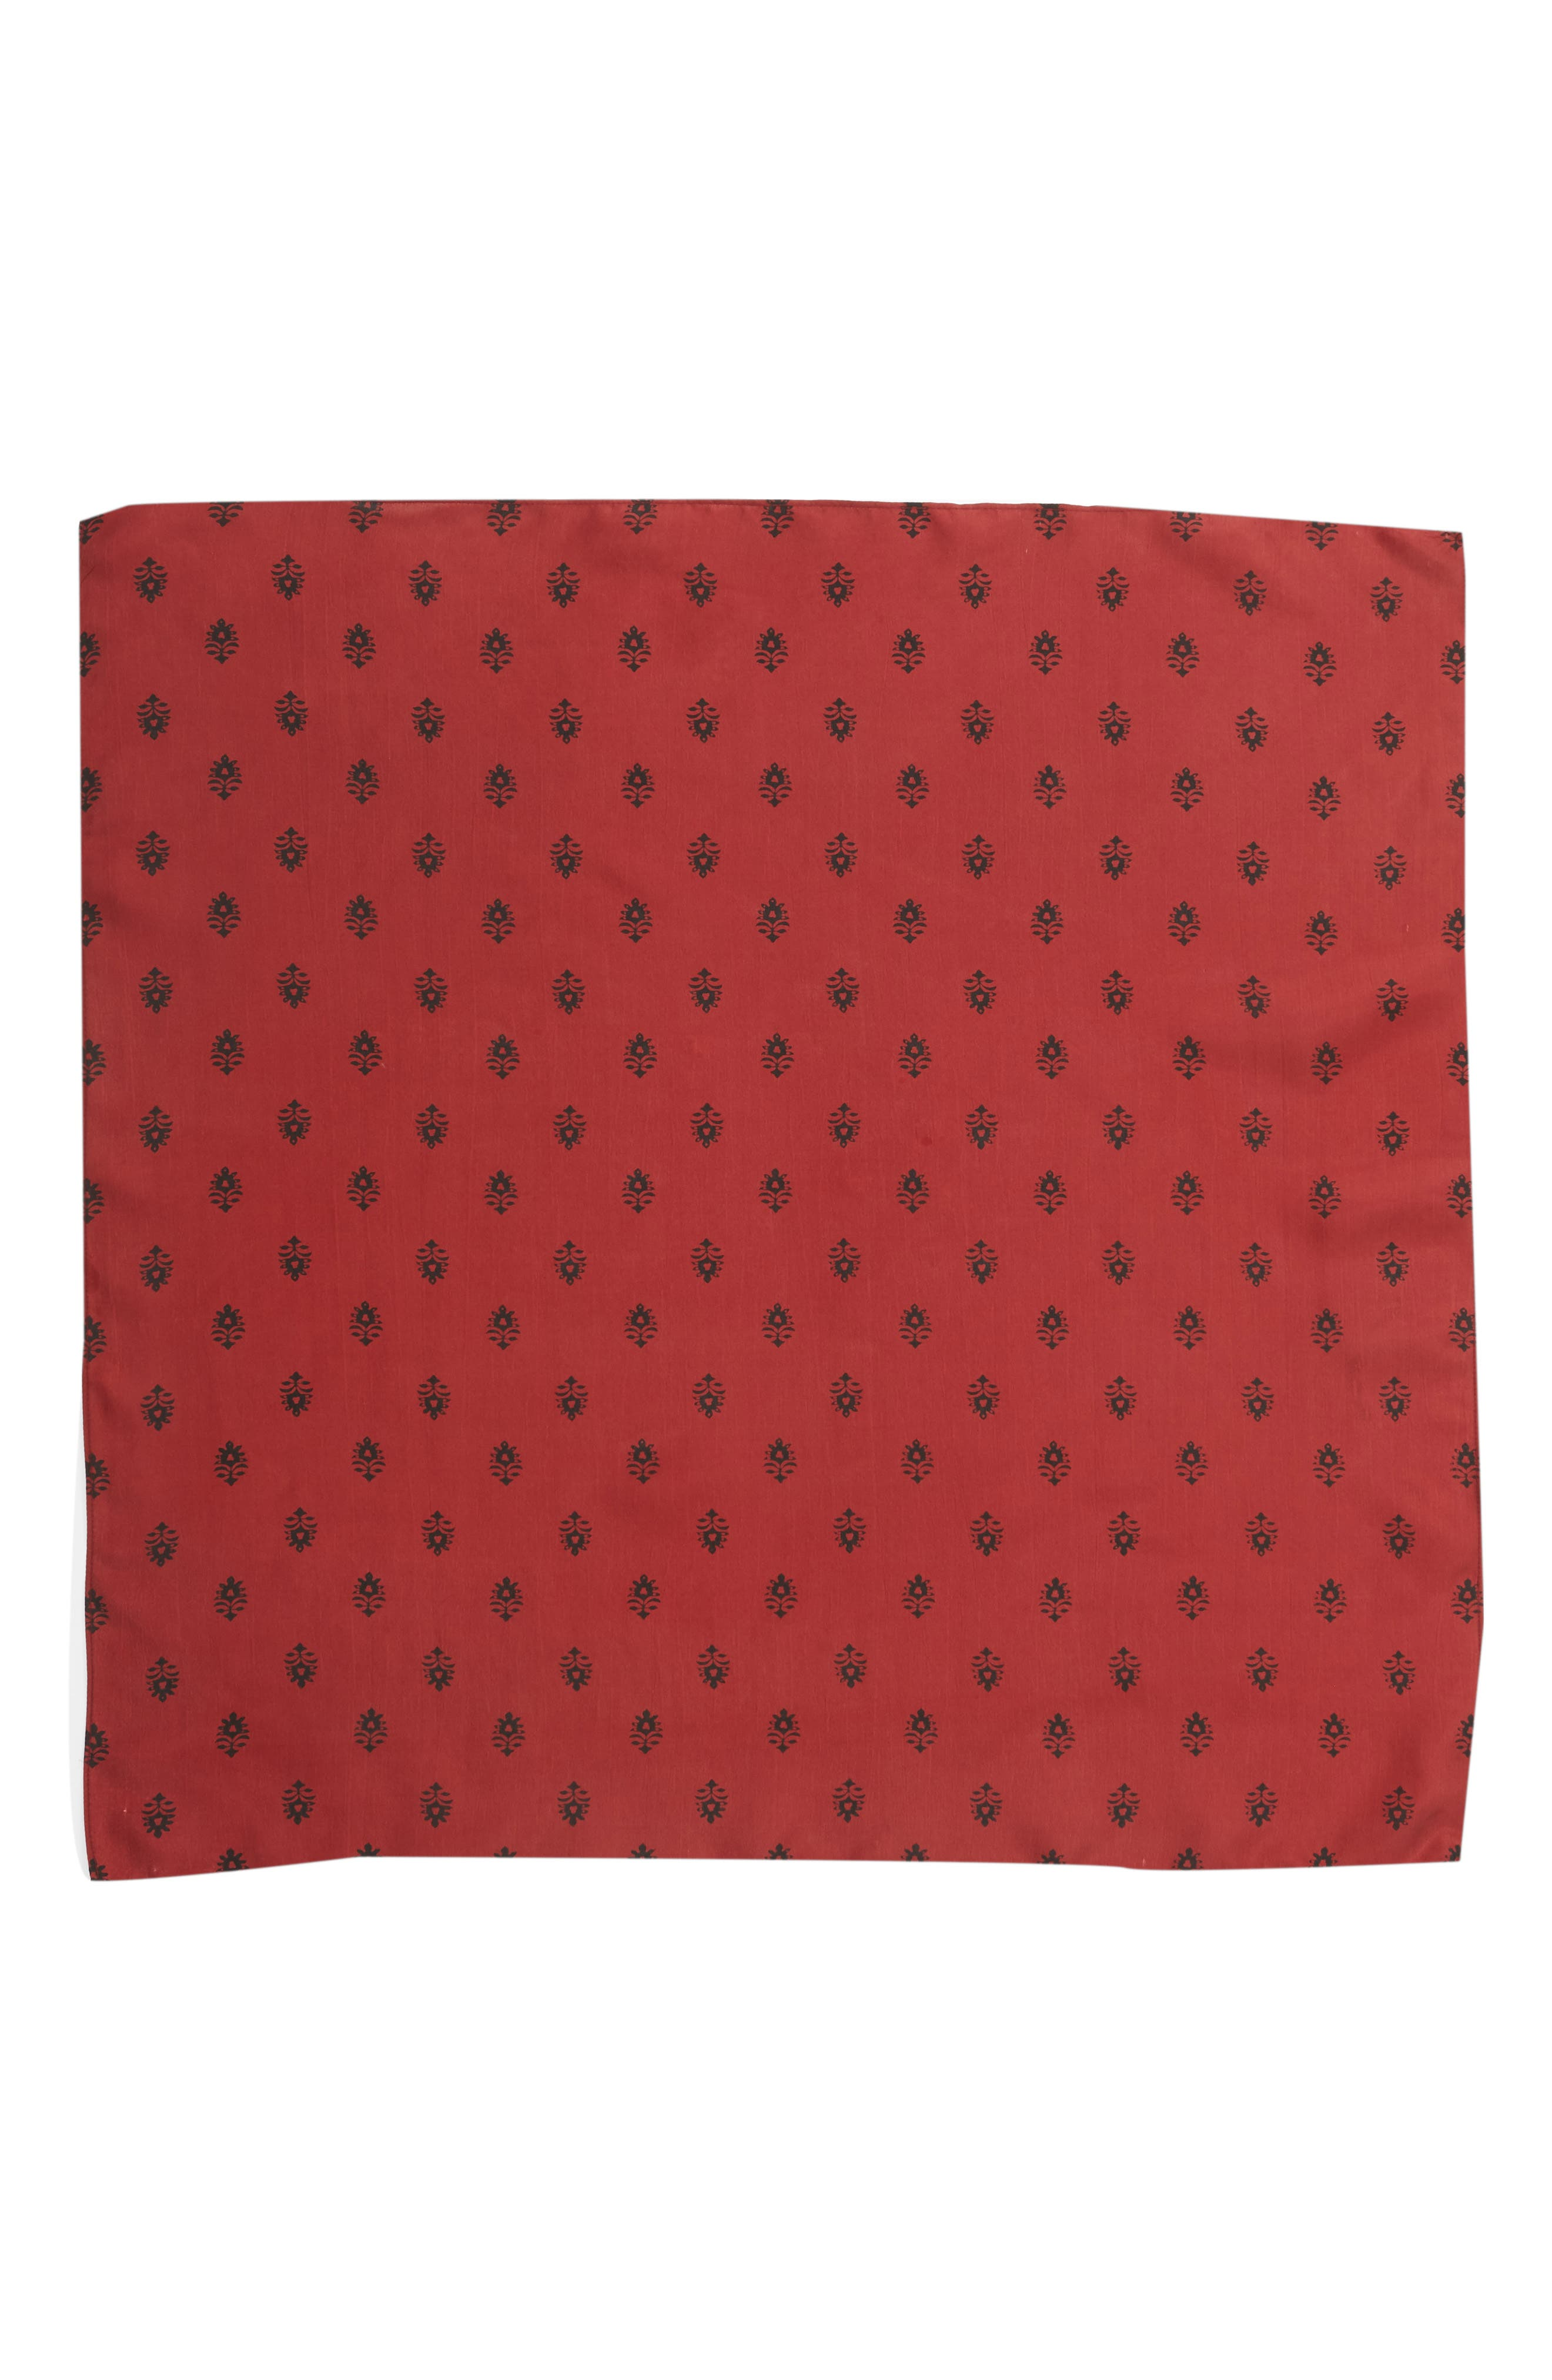 Printed Silk Square Scarf,                             Alternate thumbnail 3, color,                             RED BALI DOTS